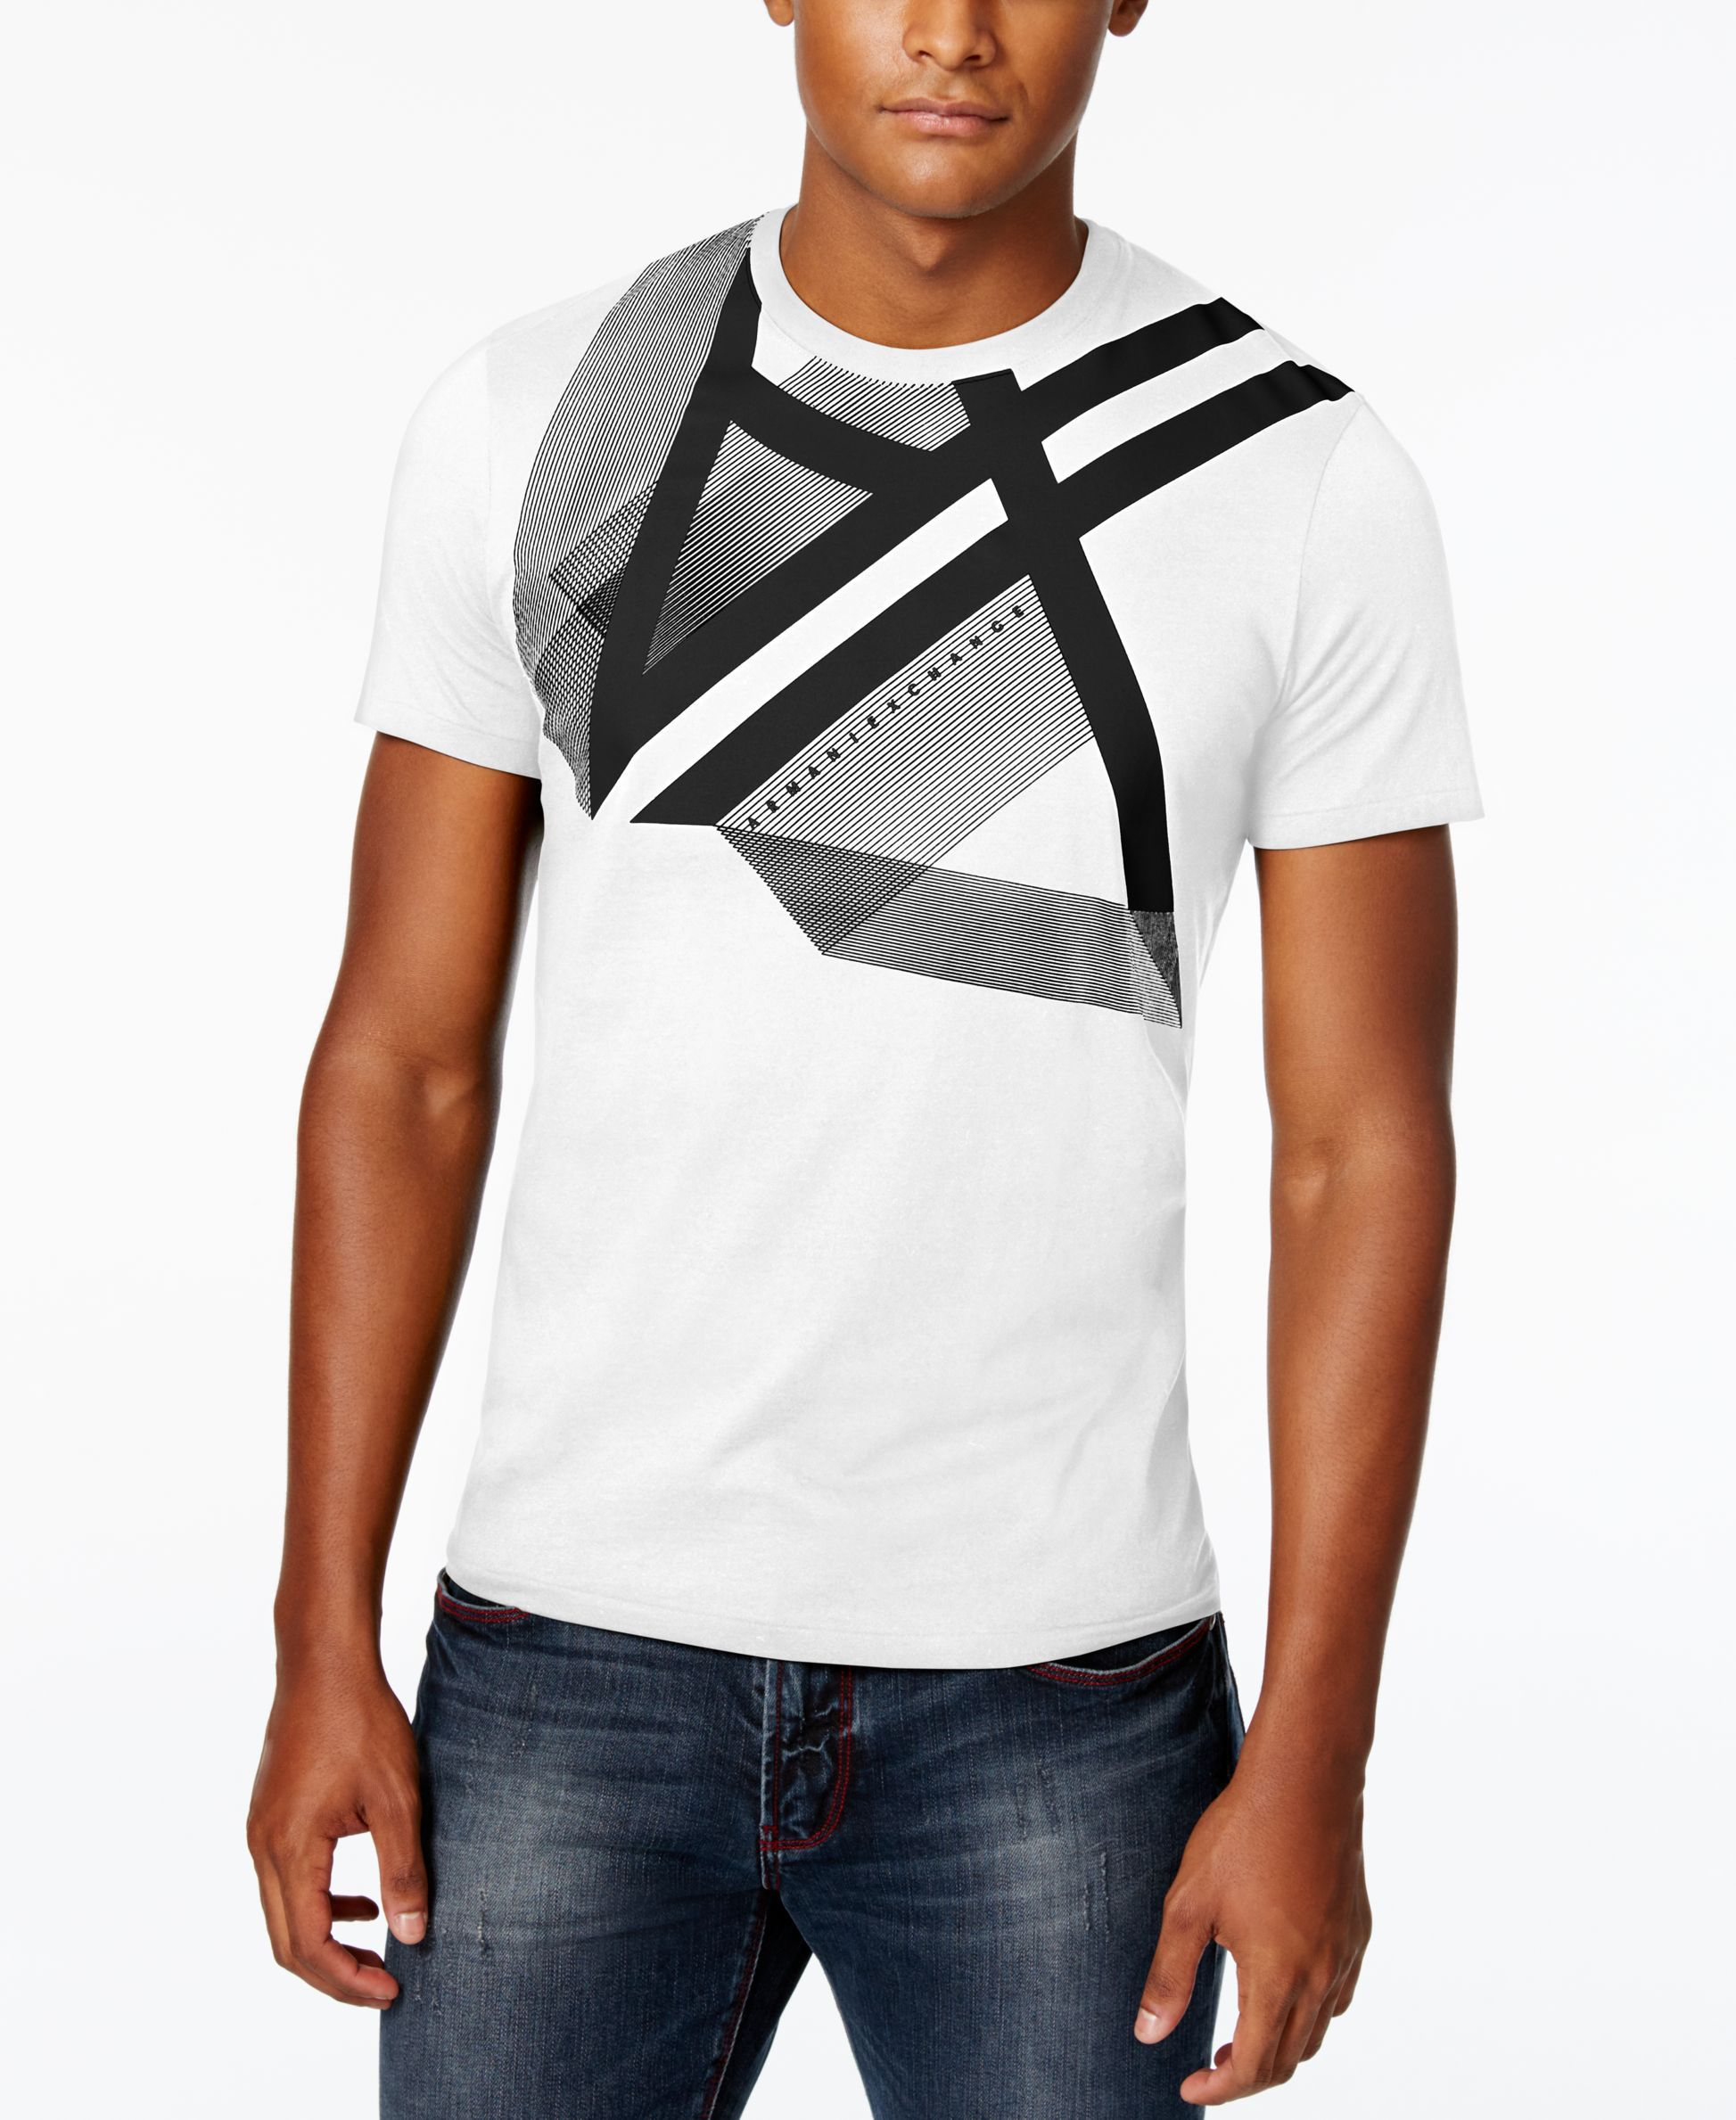 24e302ea5ed531 Armani Exchange Men s Right Side Up Graphic-Print Logo T-Shirt - that  should be mine!